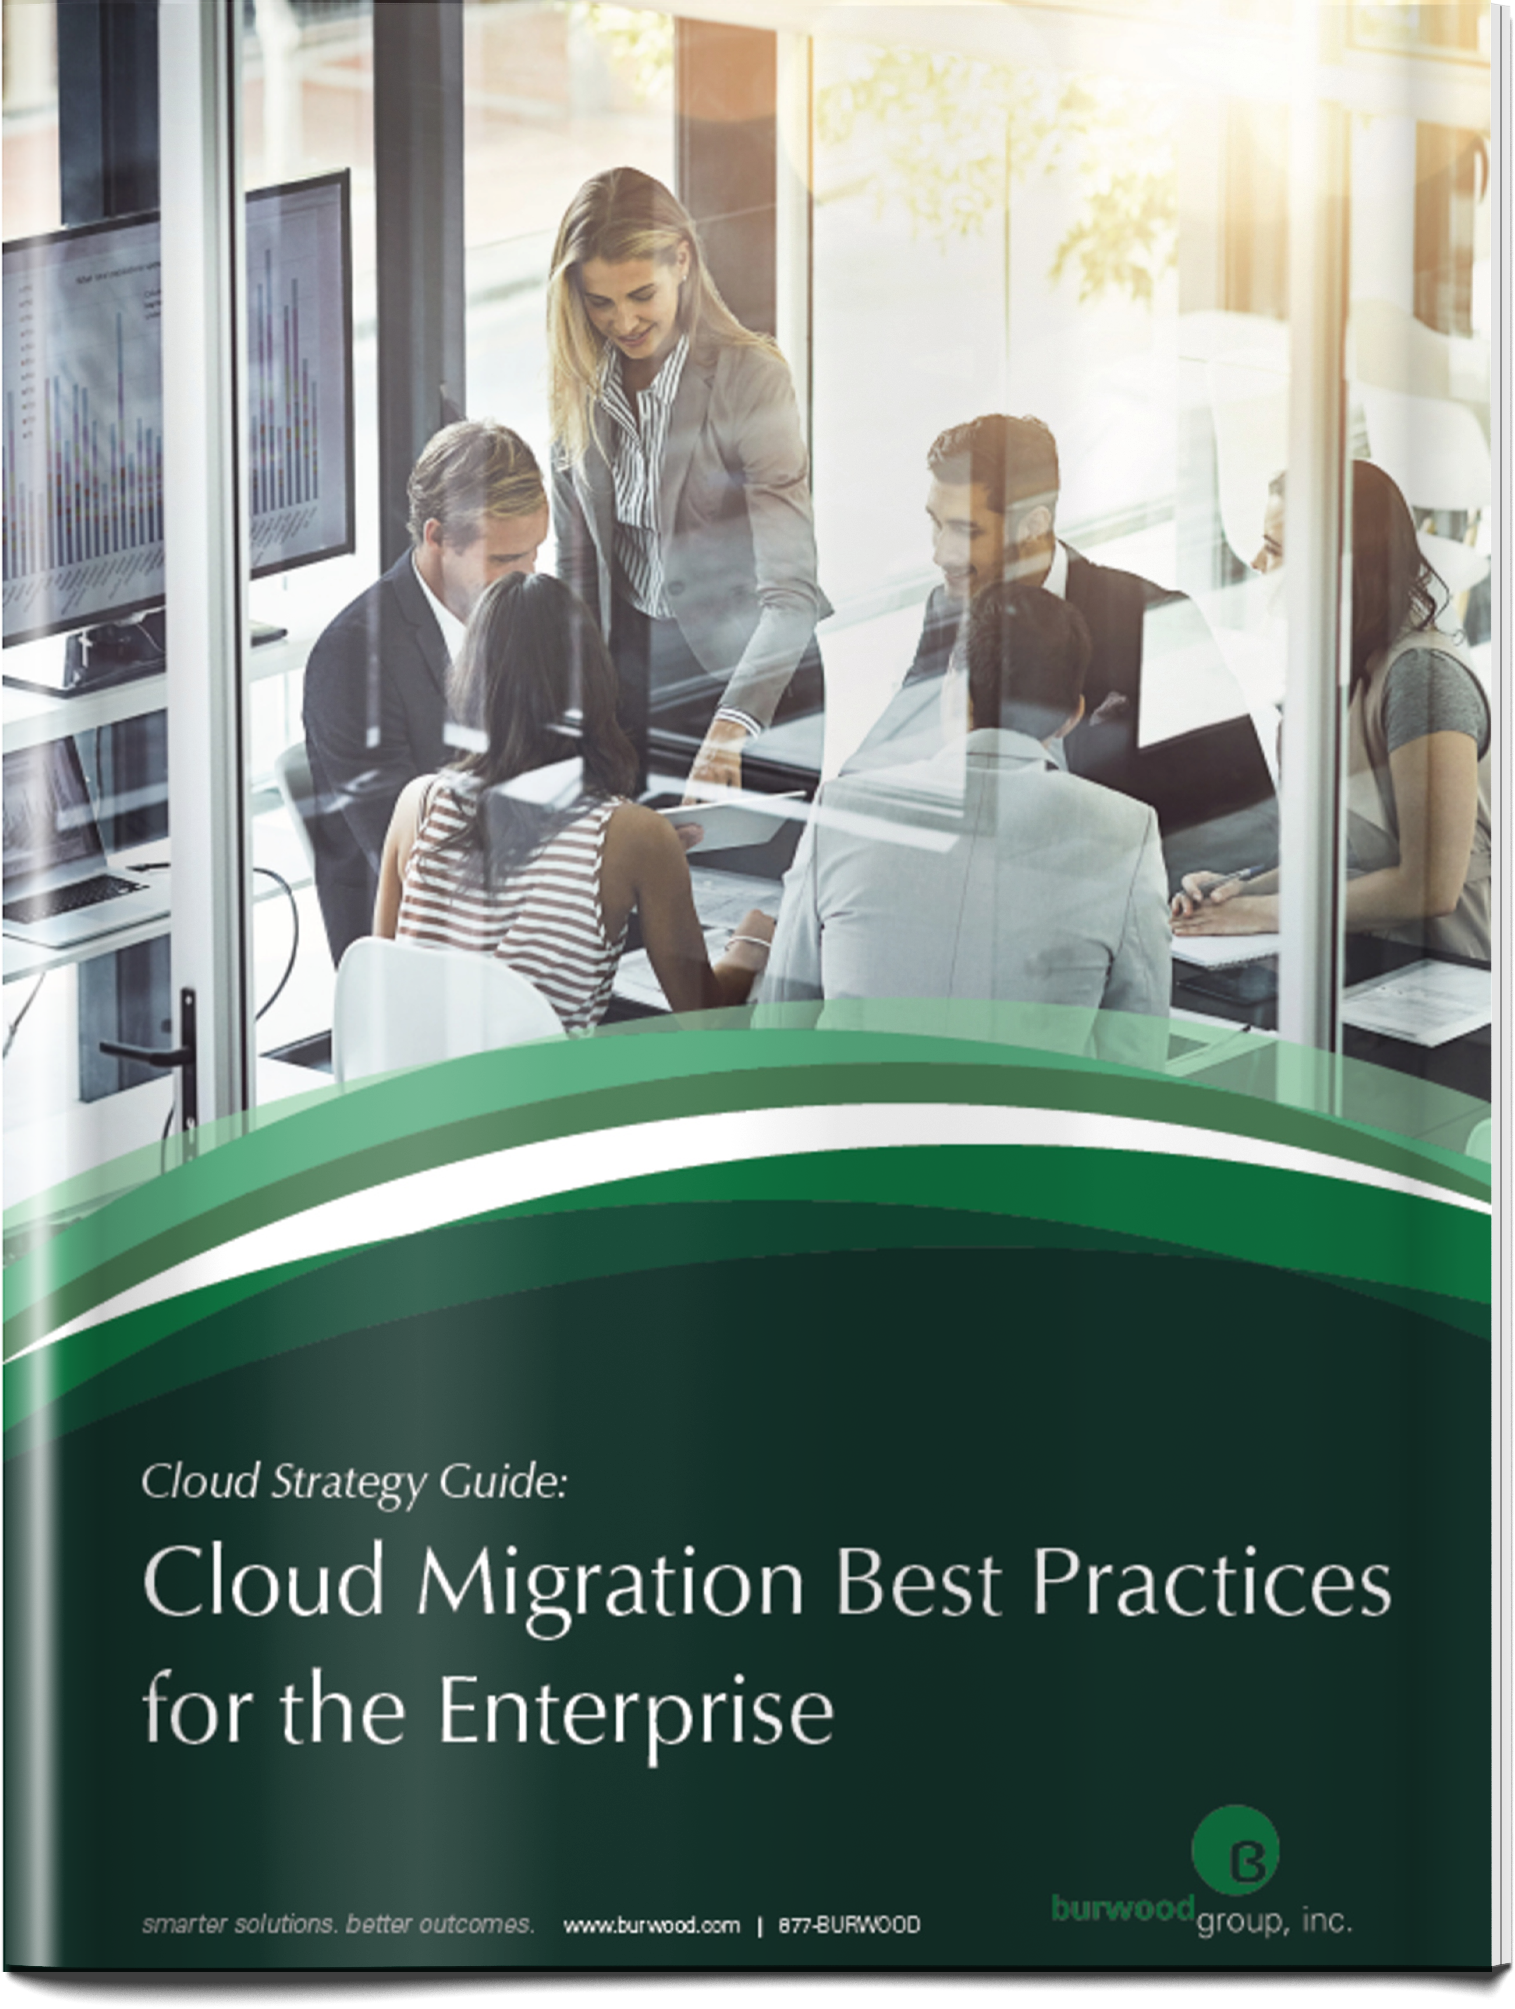 Cloud Migration Best Practices for the Enterprise - While all cloud migrations have their own unique set of drivers and requirements, there are common steps to success that Burwood Group has experienced helping our clients migrate to the cloud.Download The Whitepaper